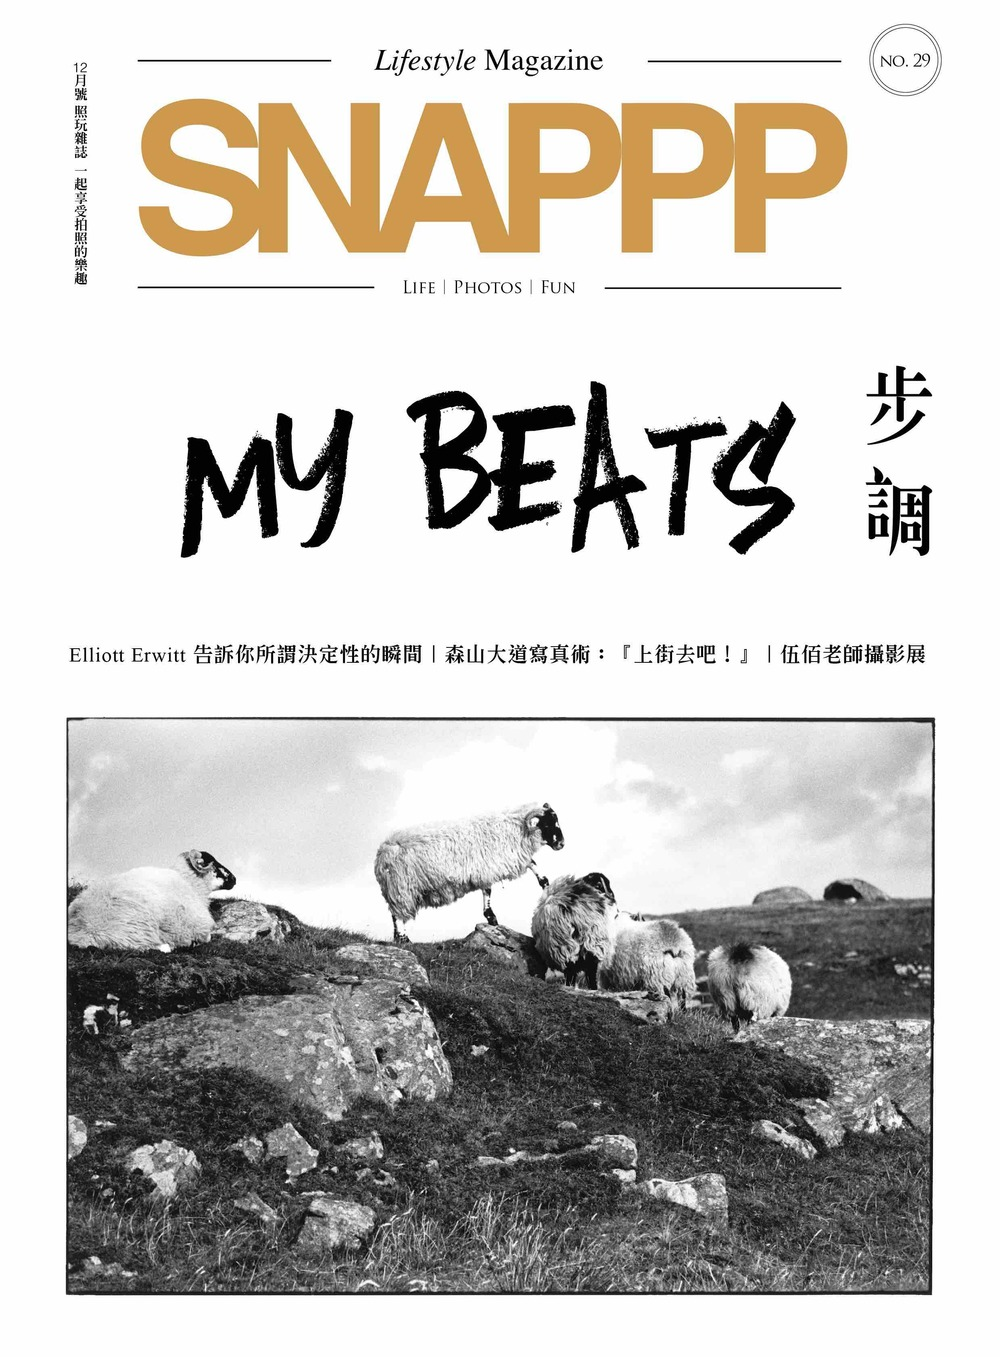 SNAPPP-NO29 COVER-ver2.jpg